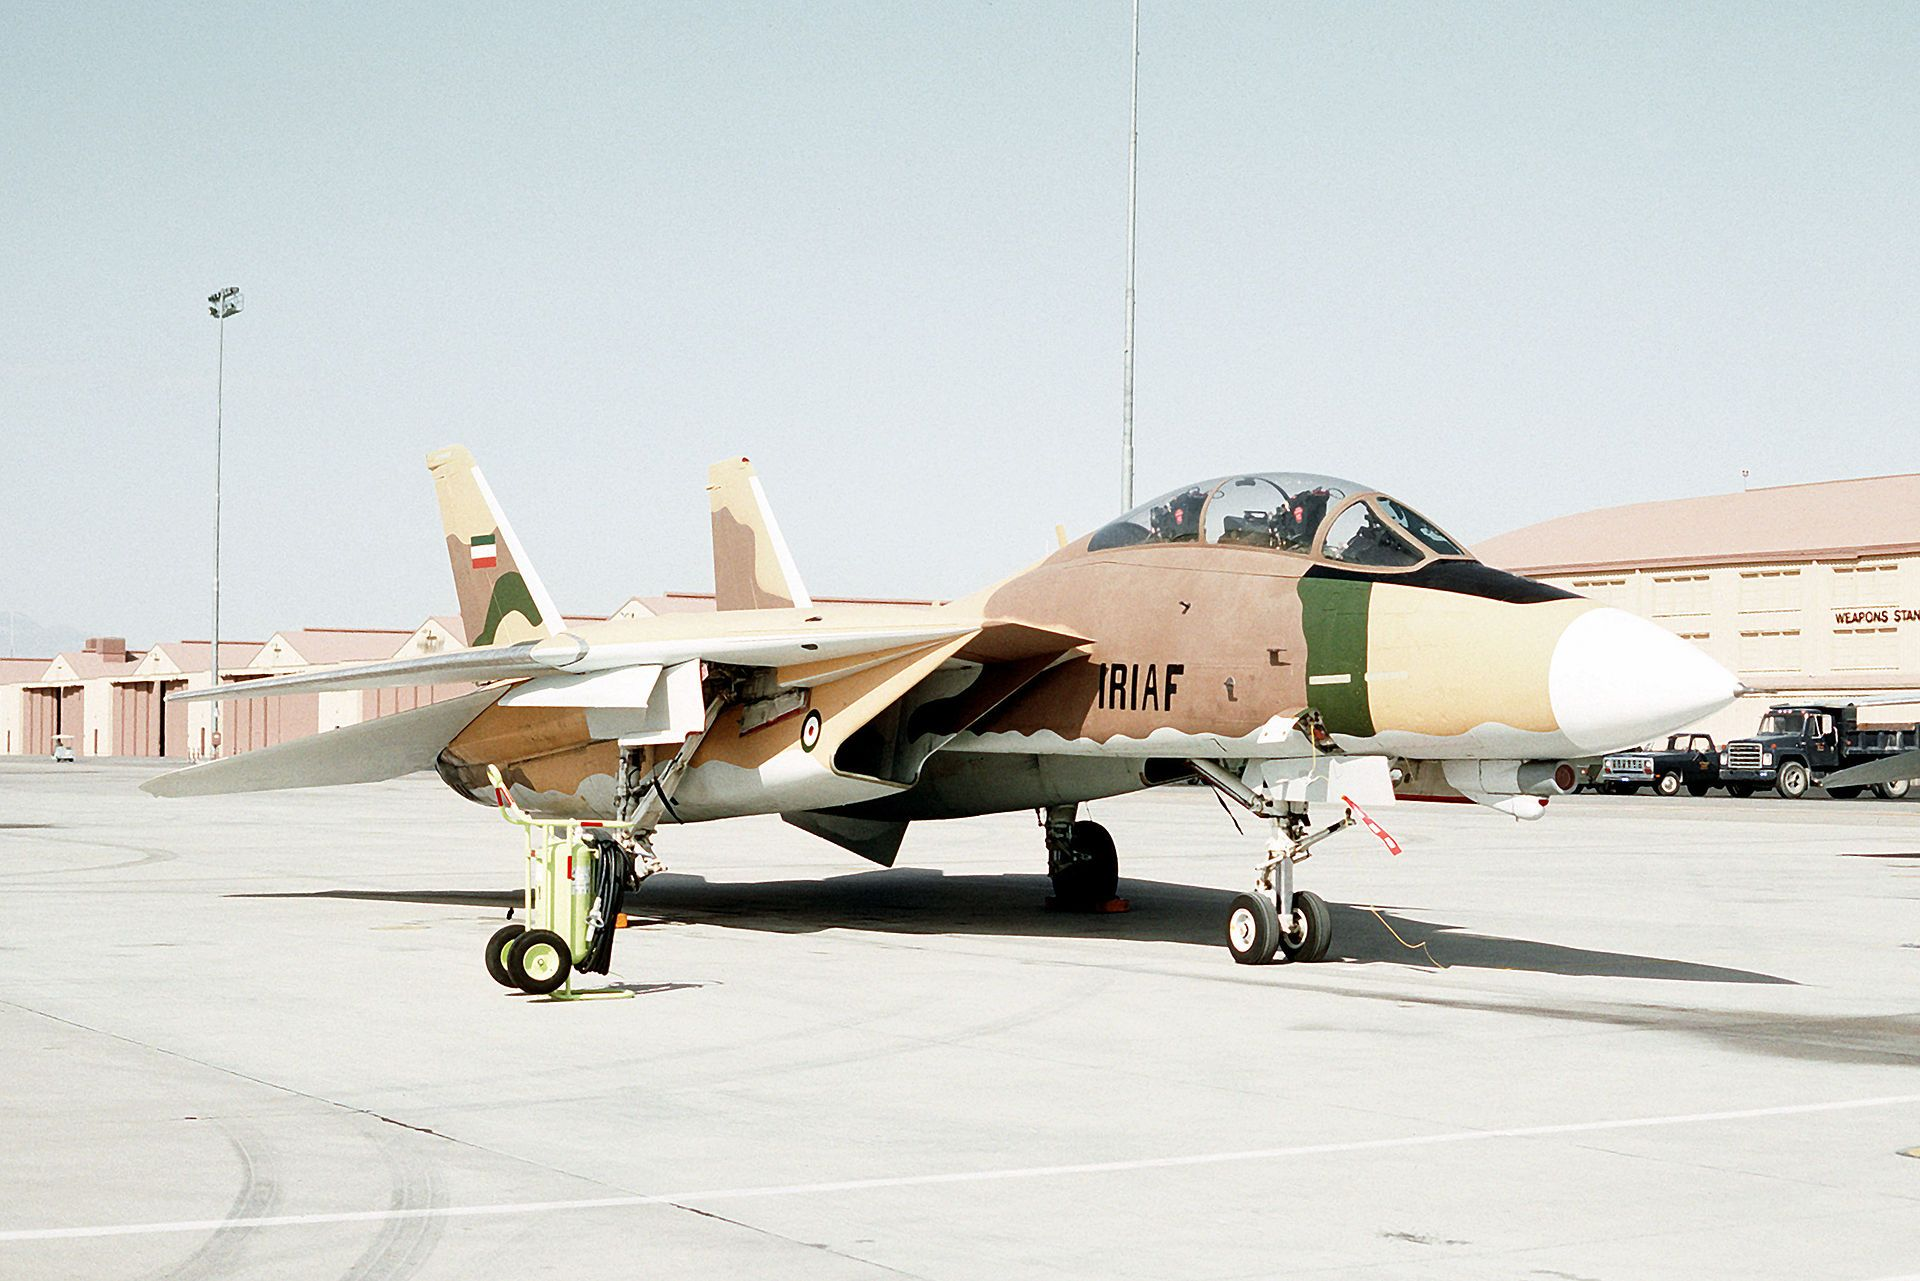 US F-14 painted like an Iranian fighter - F-14雄貓式戰鬥機 - 維基百科,自由的百科全書   Fighter jets, Fighter, Navy aircraft carrier